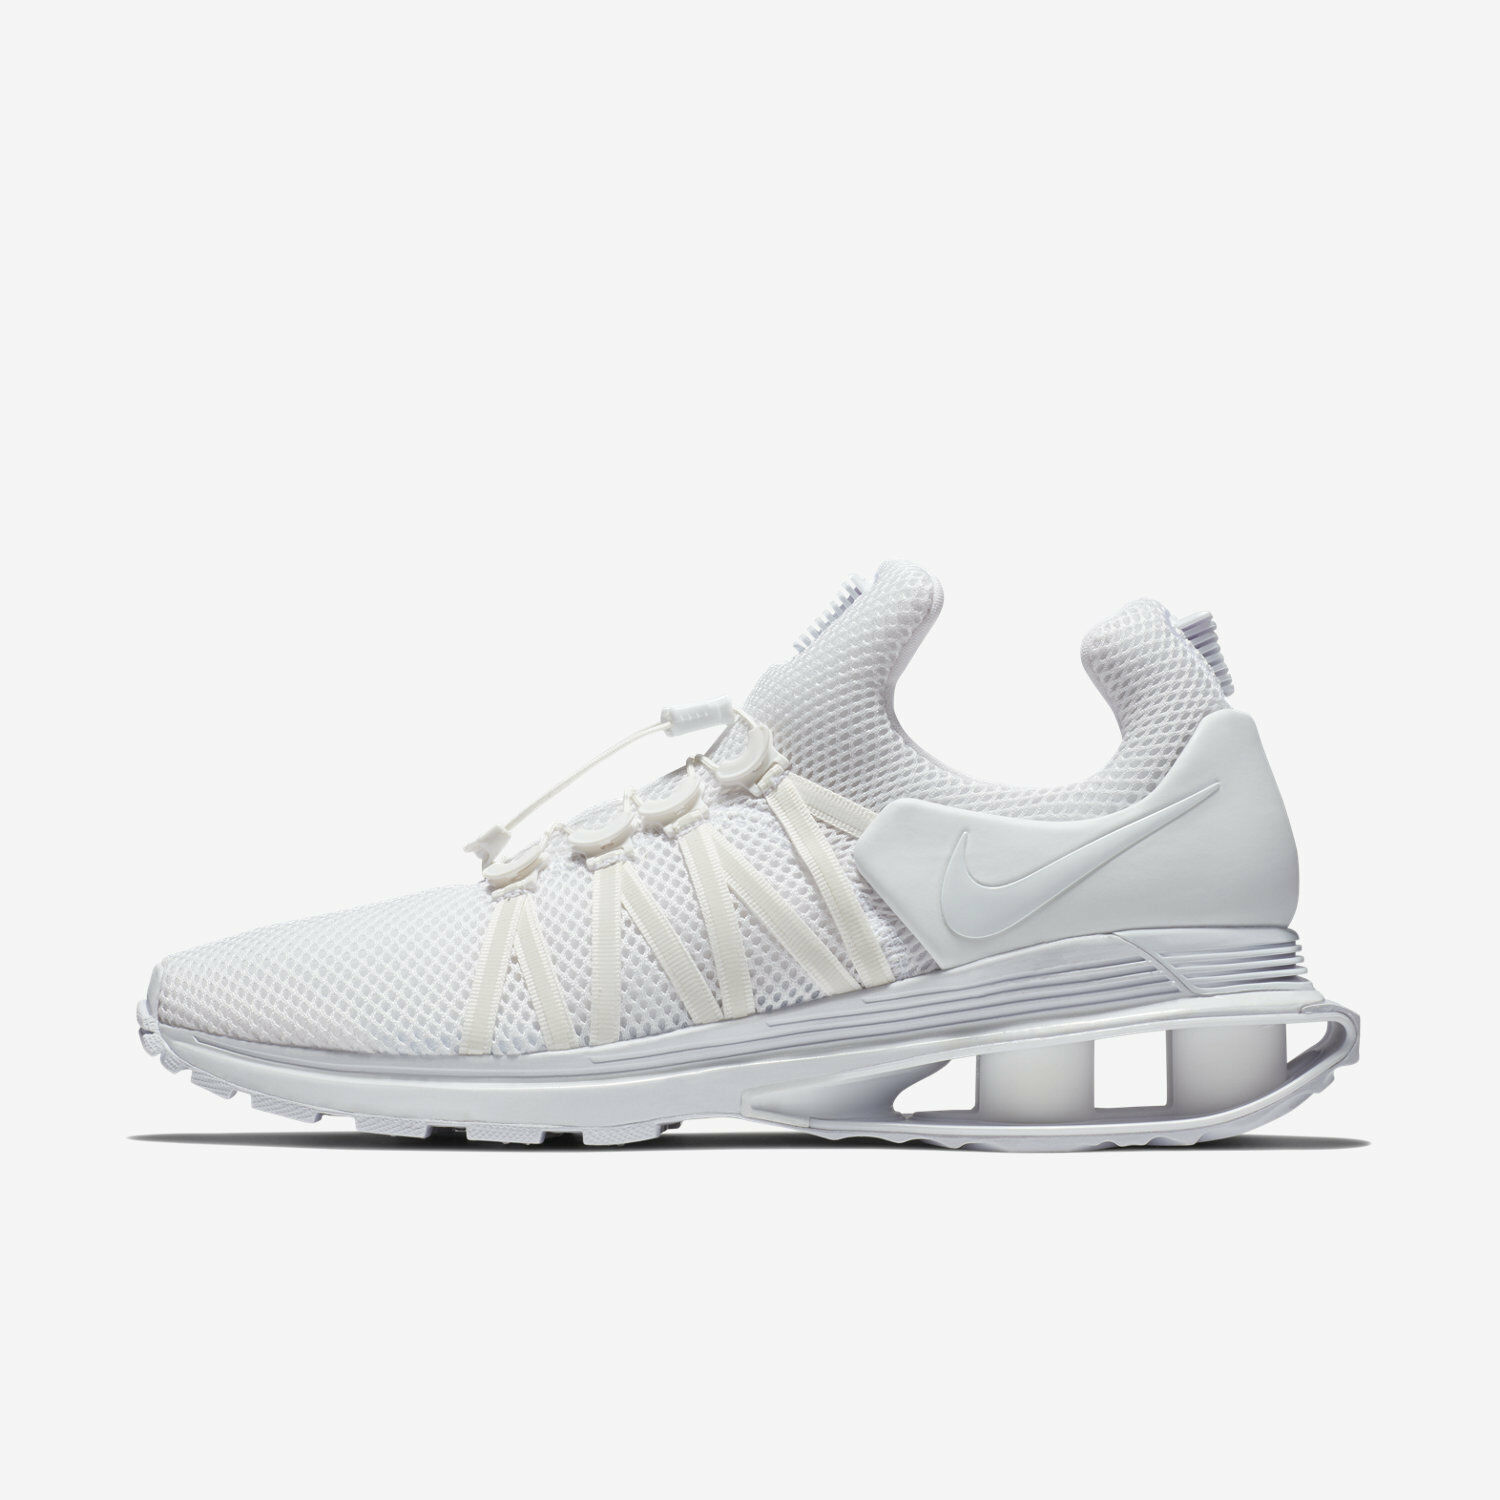 47d744edfe Shox Gravity Men's shoes Size 13 Triple White AR1999-100 Nike  ntkfod7933-Athletic Shoes